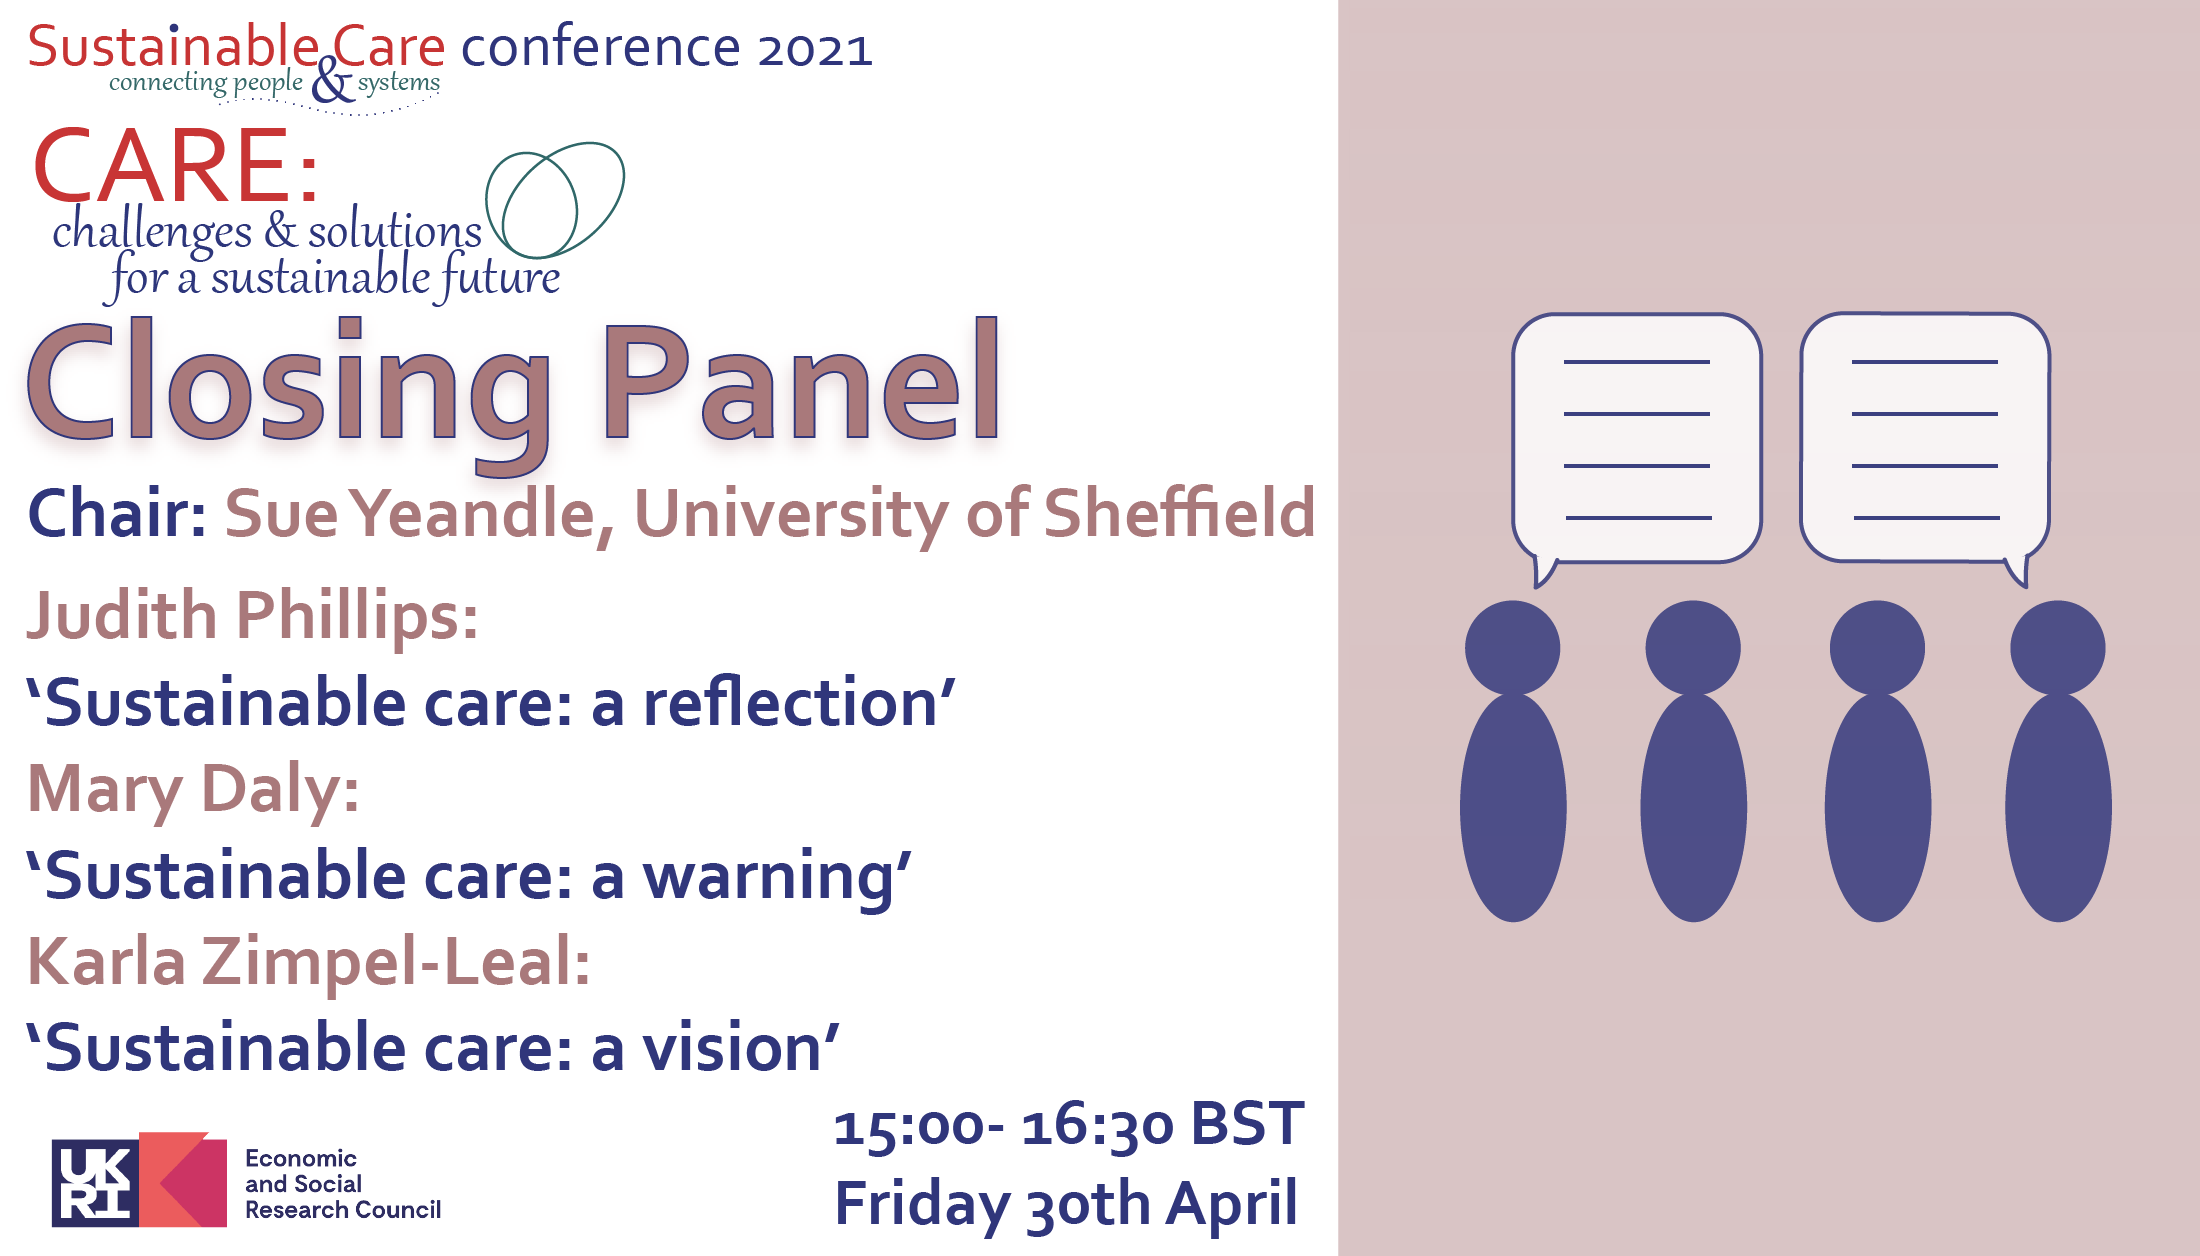 Closing Panel 15:00- 16:30 BST Sue Yeandle, Judith Phillips, Mary Daly, Karla Zimpel-Leal